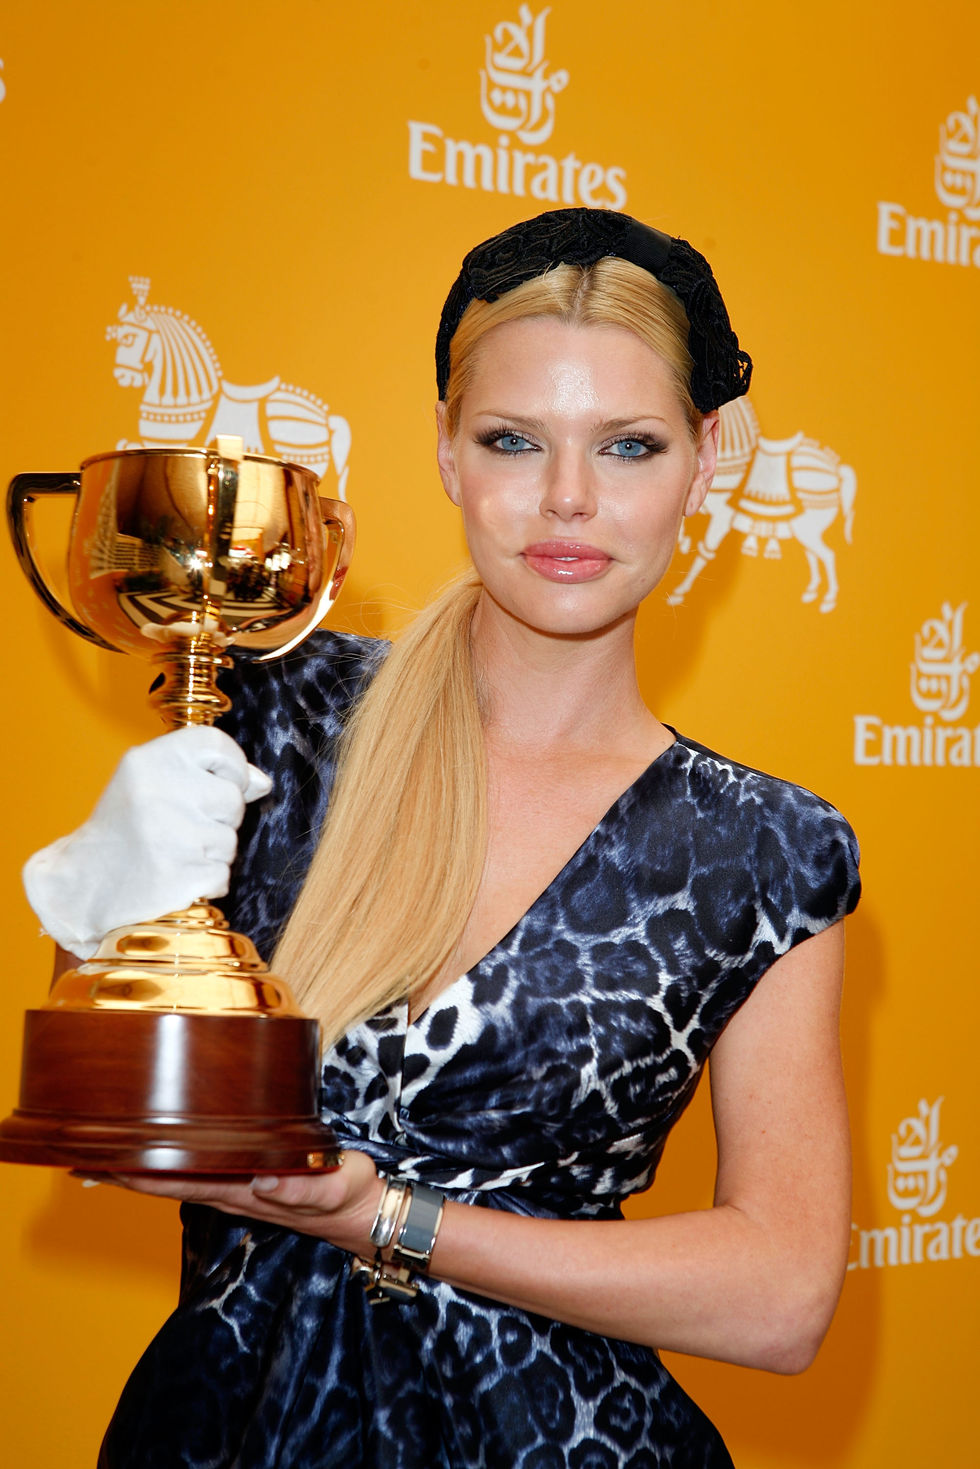 sophie-monk-emirates-melbourne-cup-day-2009-01